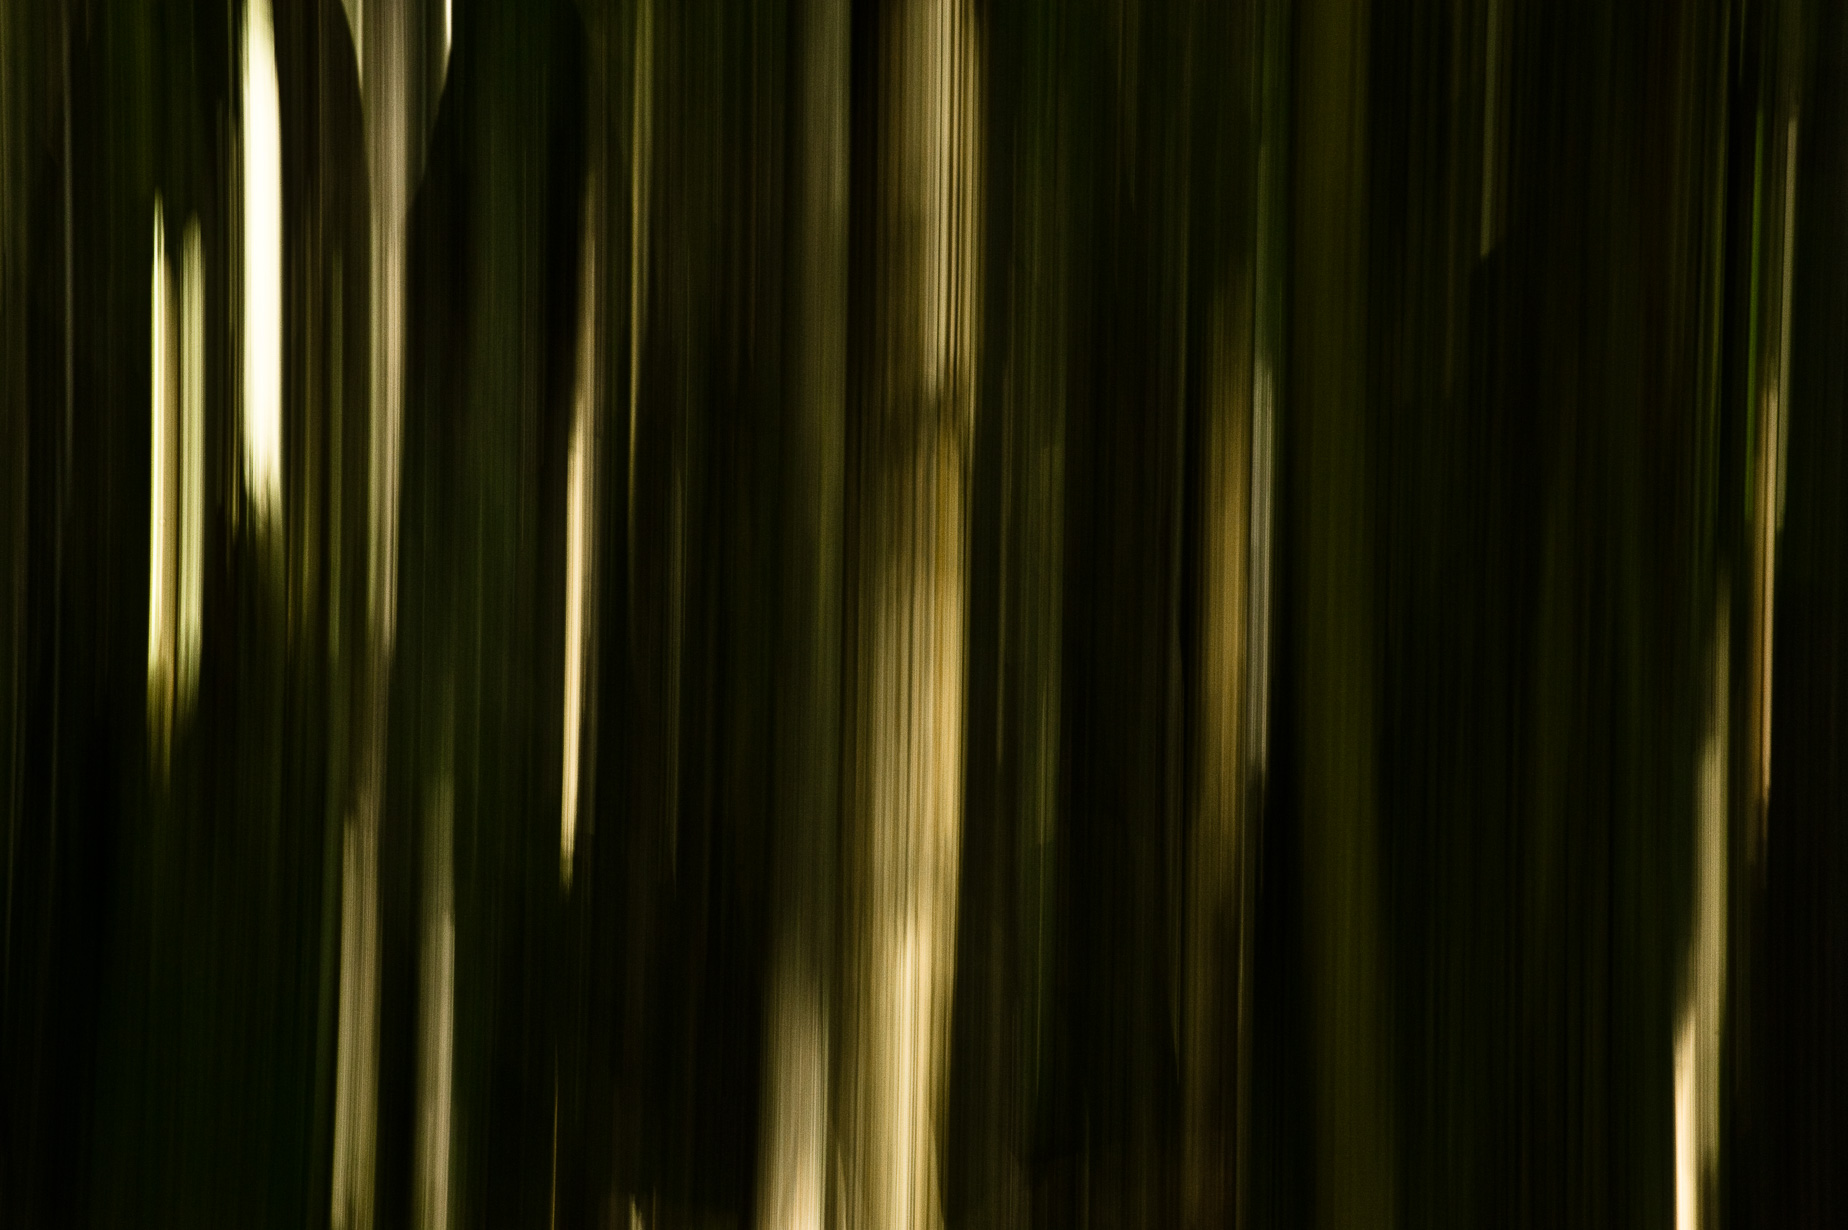 An image of part of the installation Forest by Jeffrey Scott French